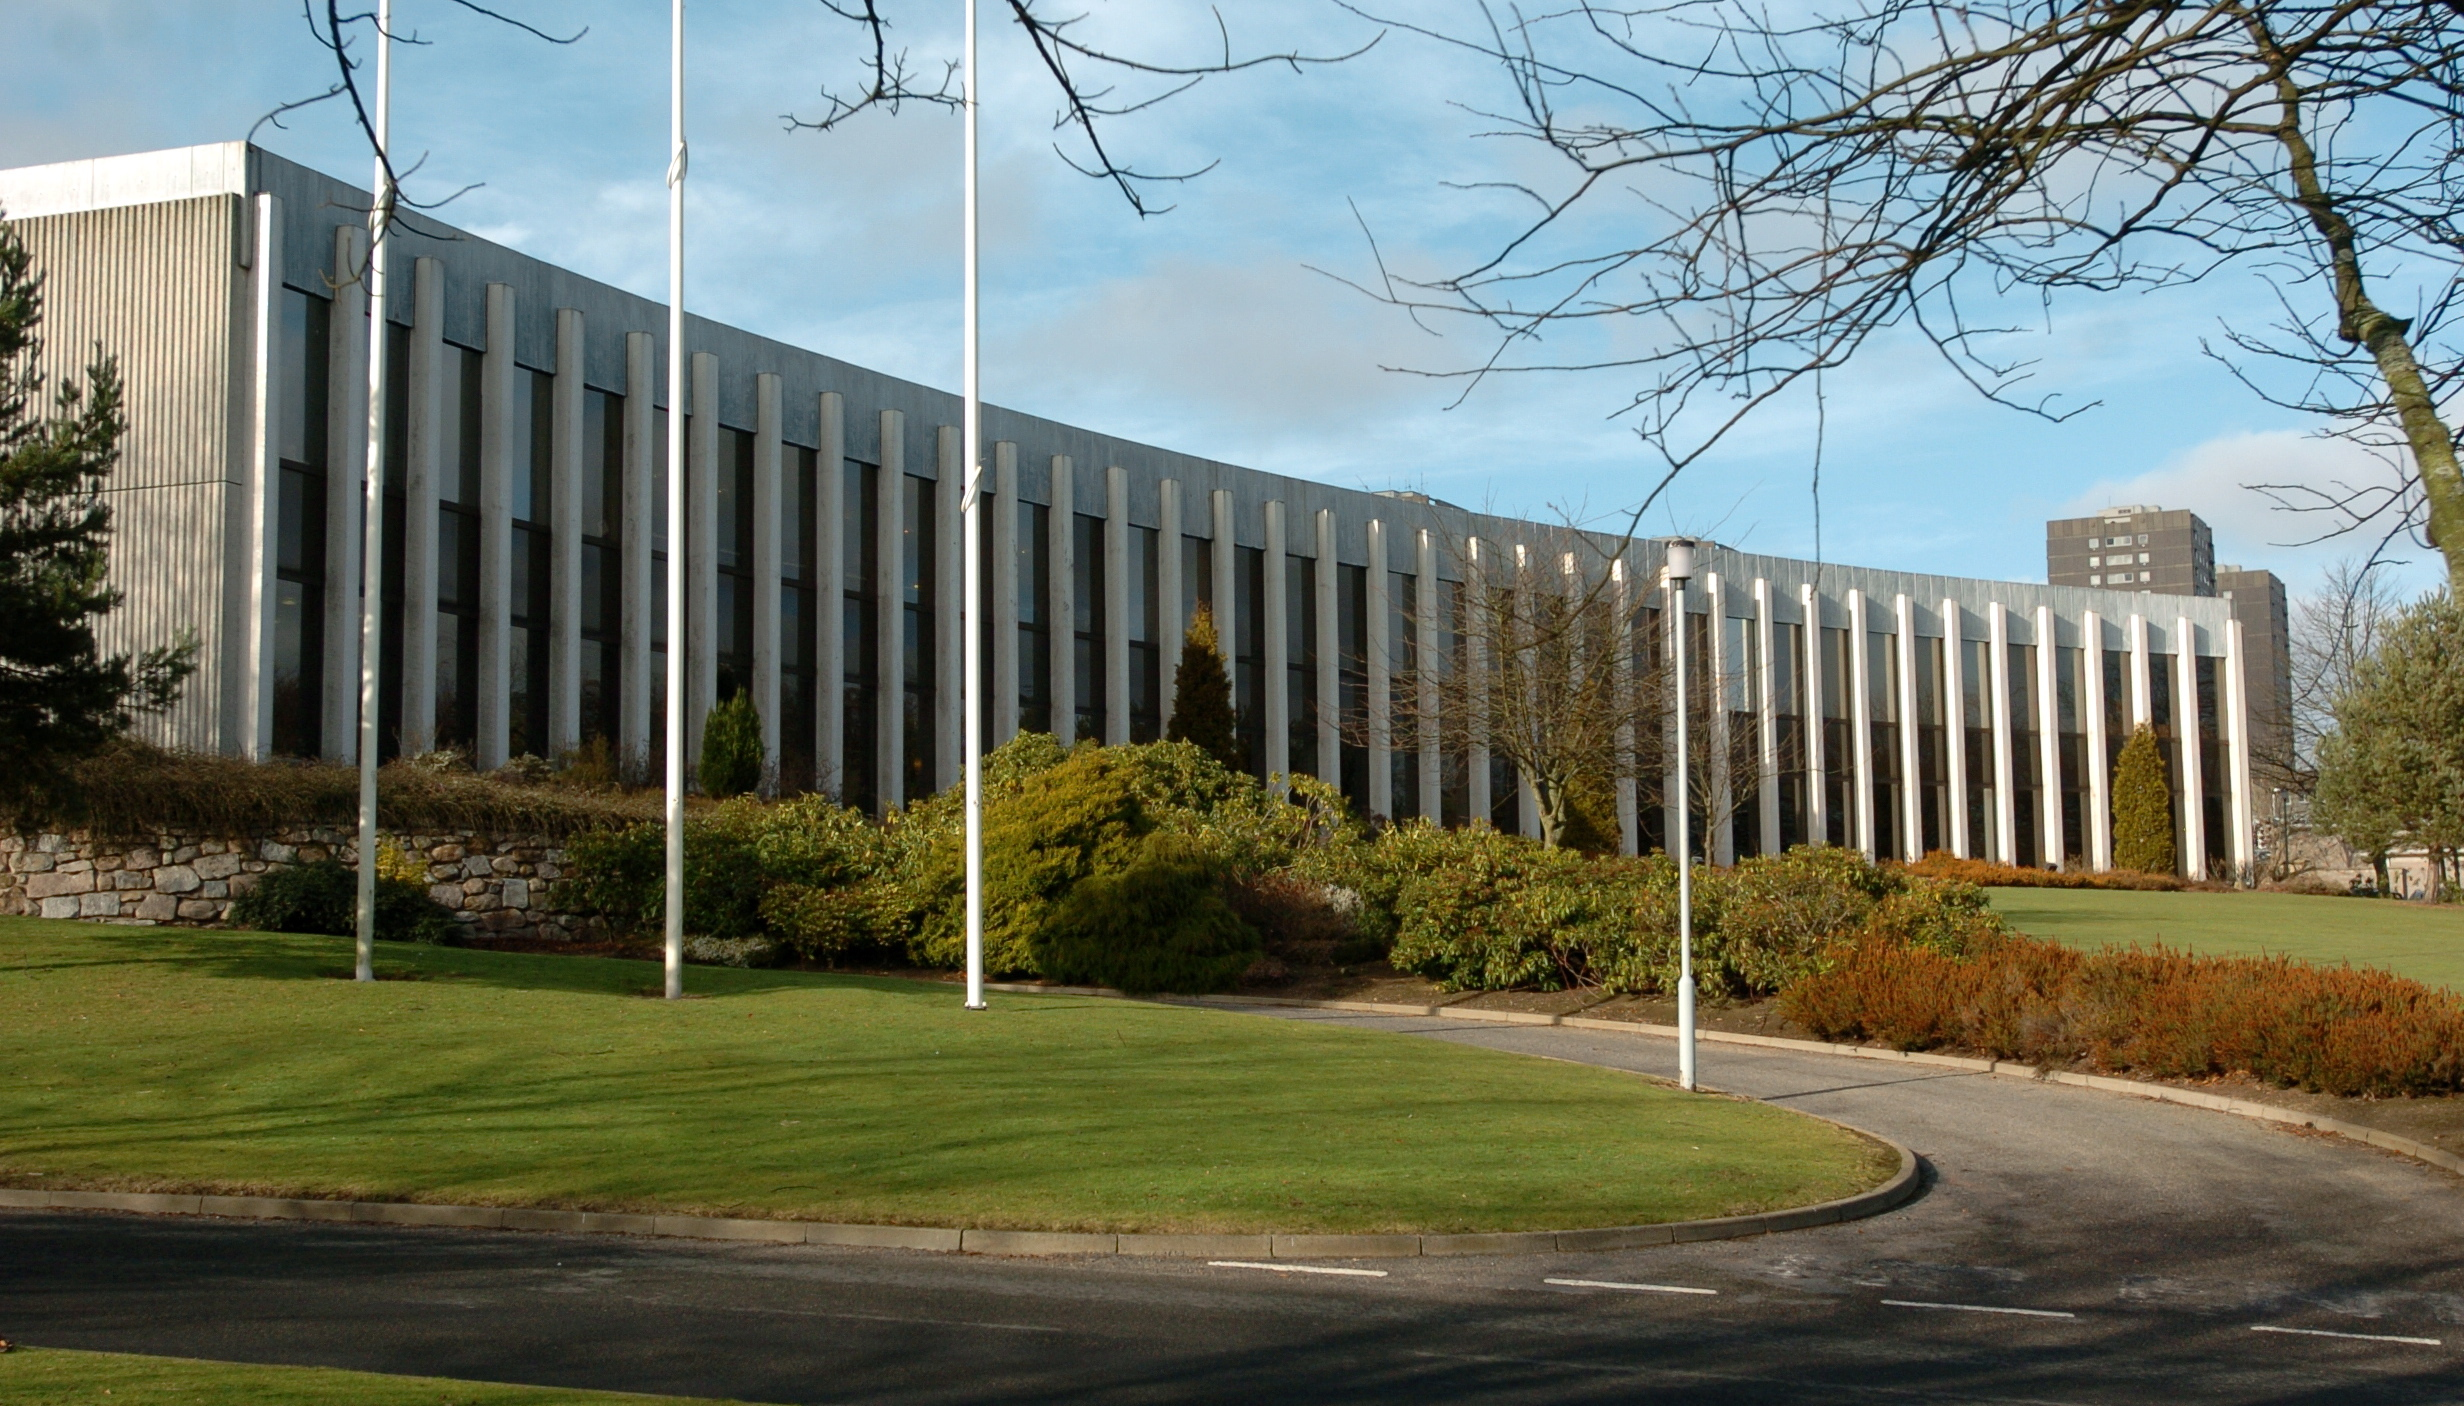 Woodhill House - Aberdeenshire Council's headquarters